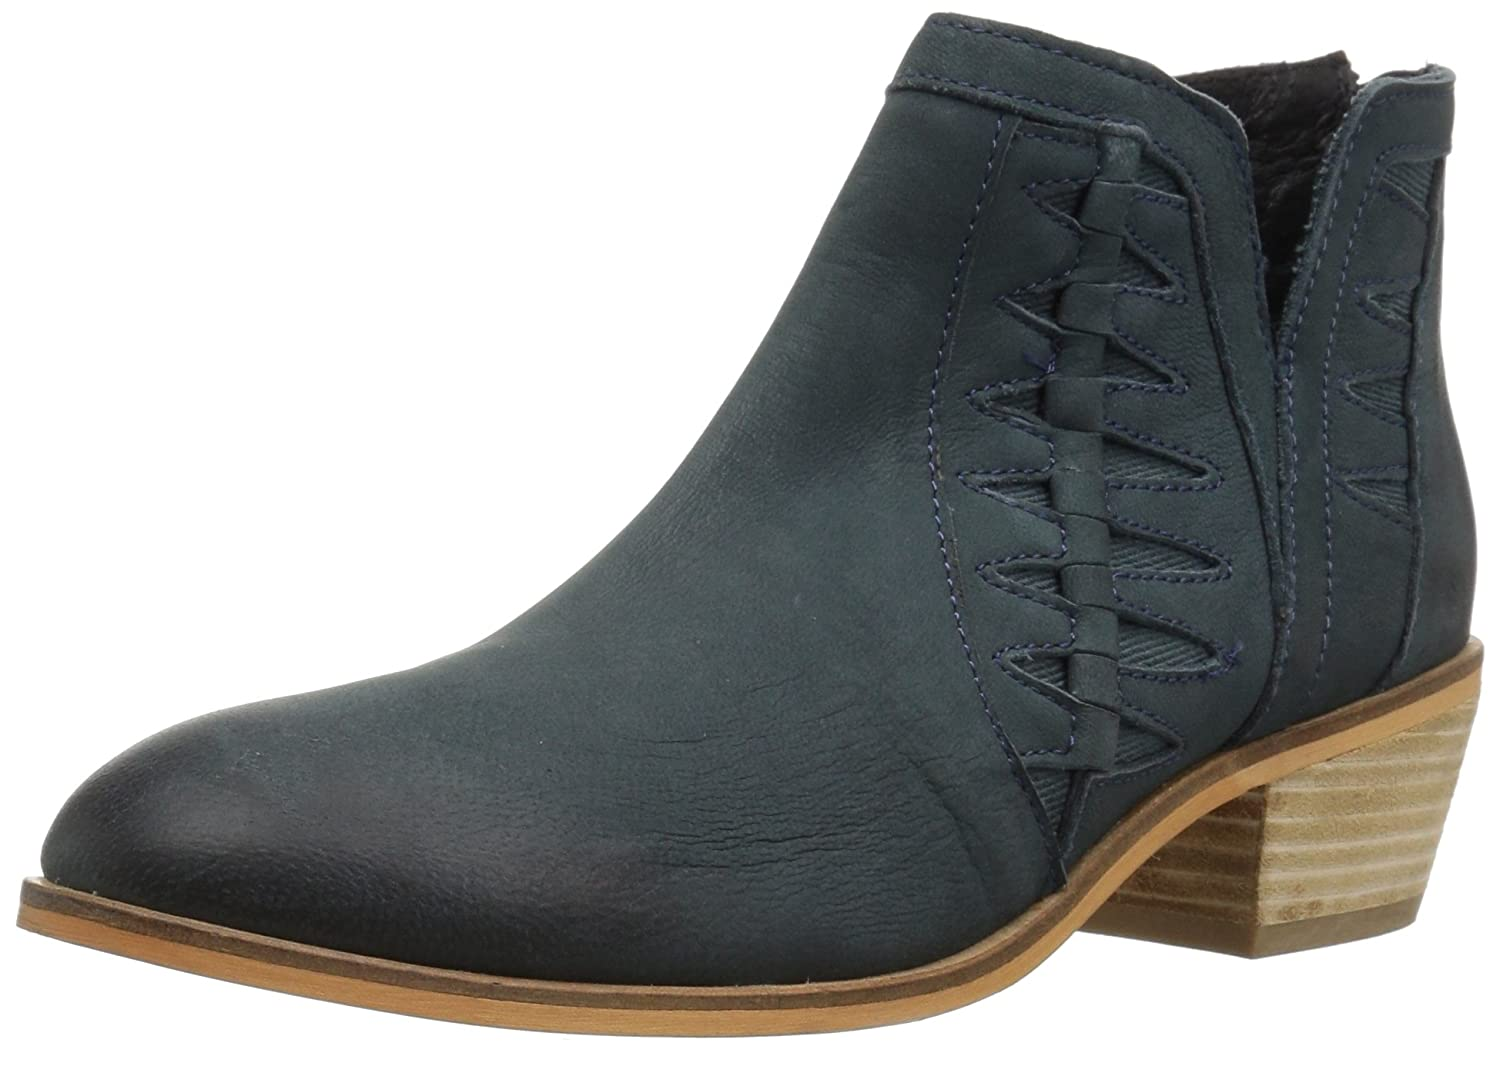 Charles by Charles David Women's Yuma Ankle Boot B06XJY3FBM 8.5 B(M) US|Navy